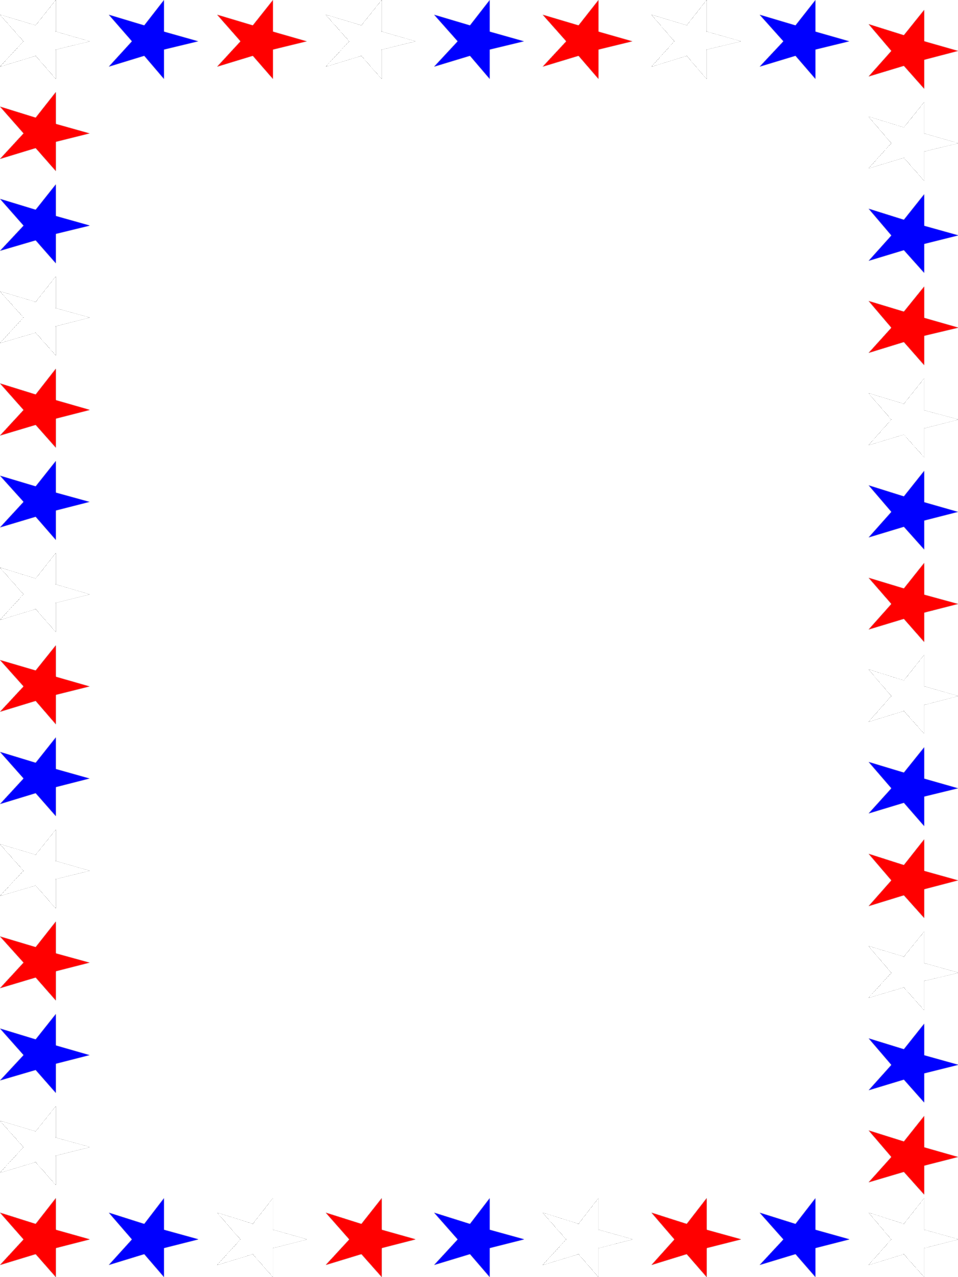 Red White And Blue Border.